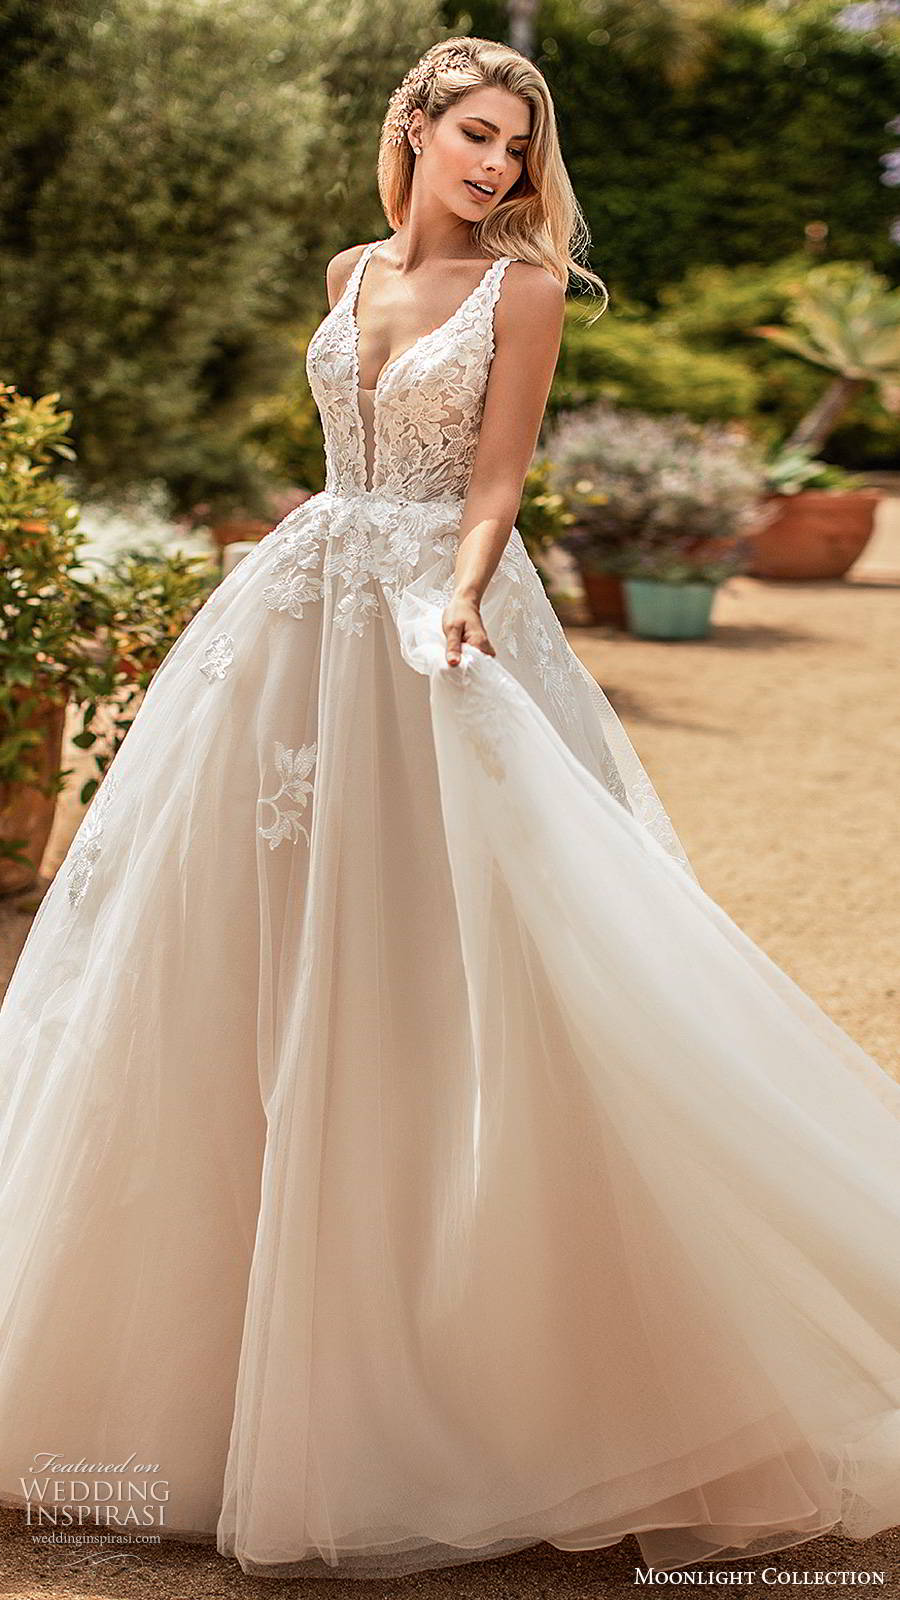 moonlight collection spring 2020 bridal sleevess thick straps plunging v neckline embellished bodice princess ball gown wedding dress v back chapel train (6) mv